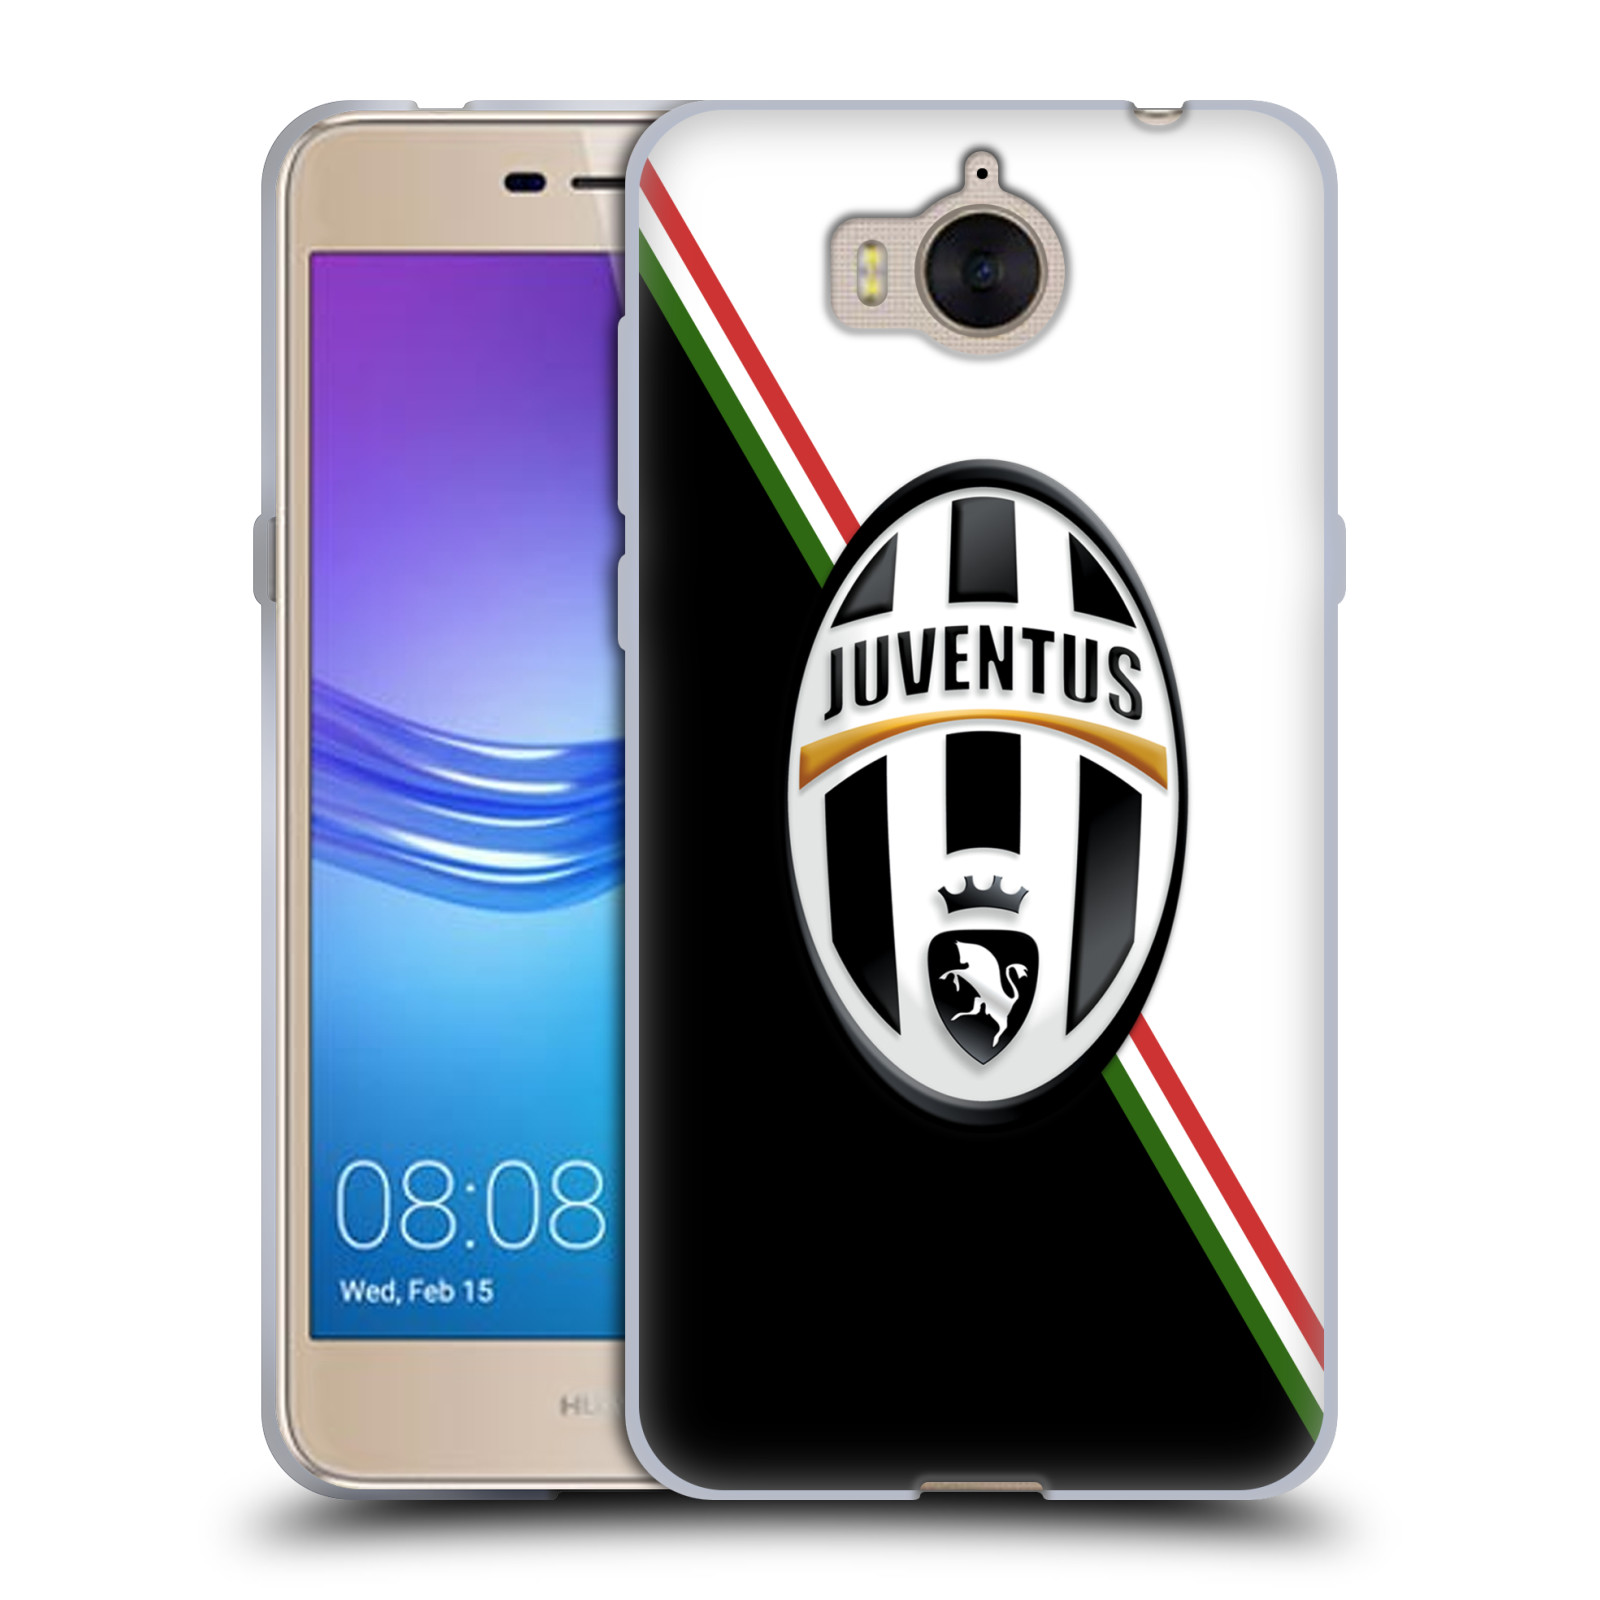 Silikonové pouzdro na mobil Huawei Y6 2017 - Head Case - Juventus FC - Black and White